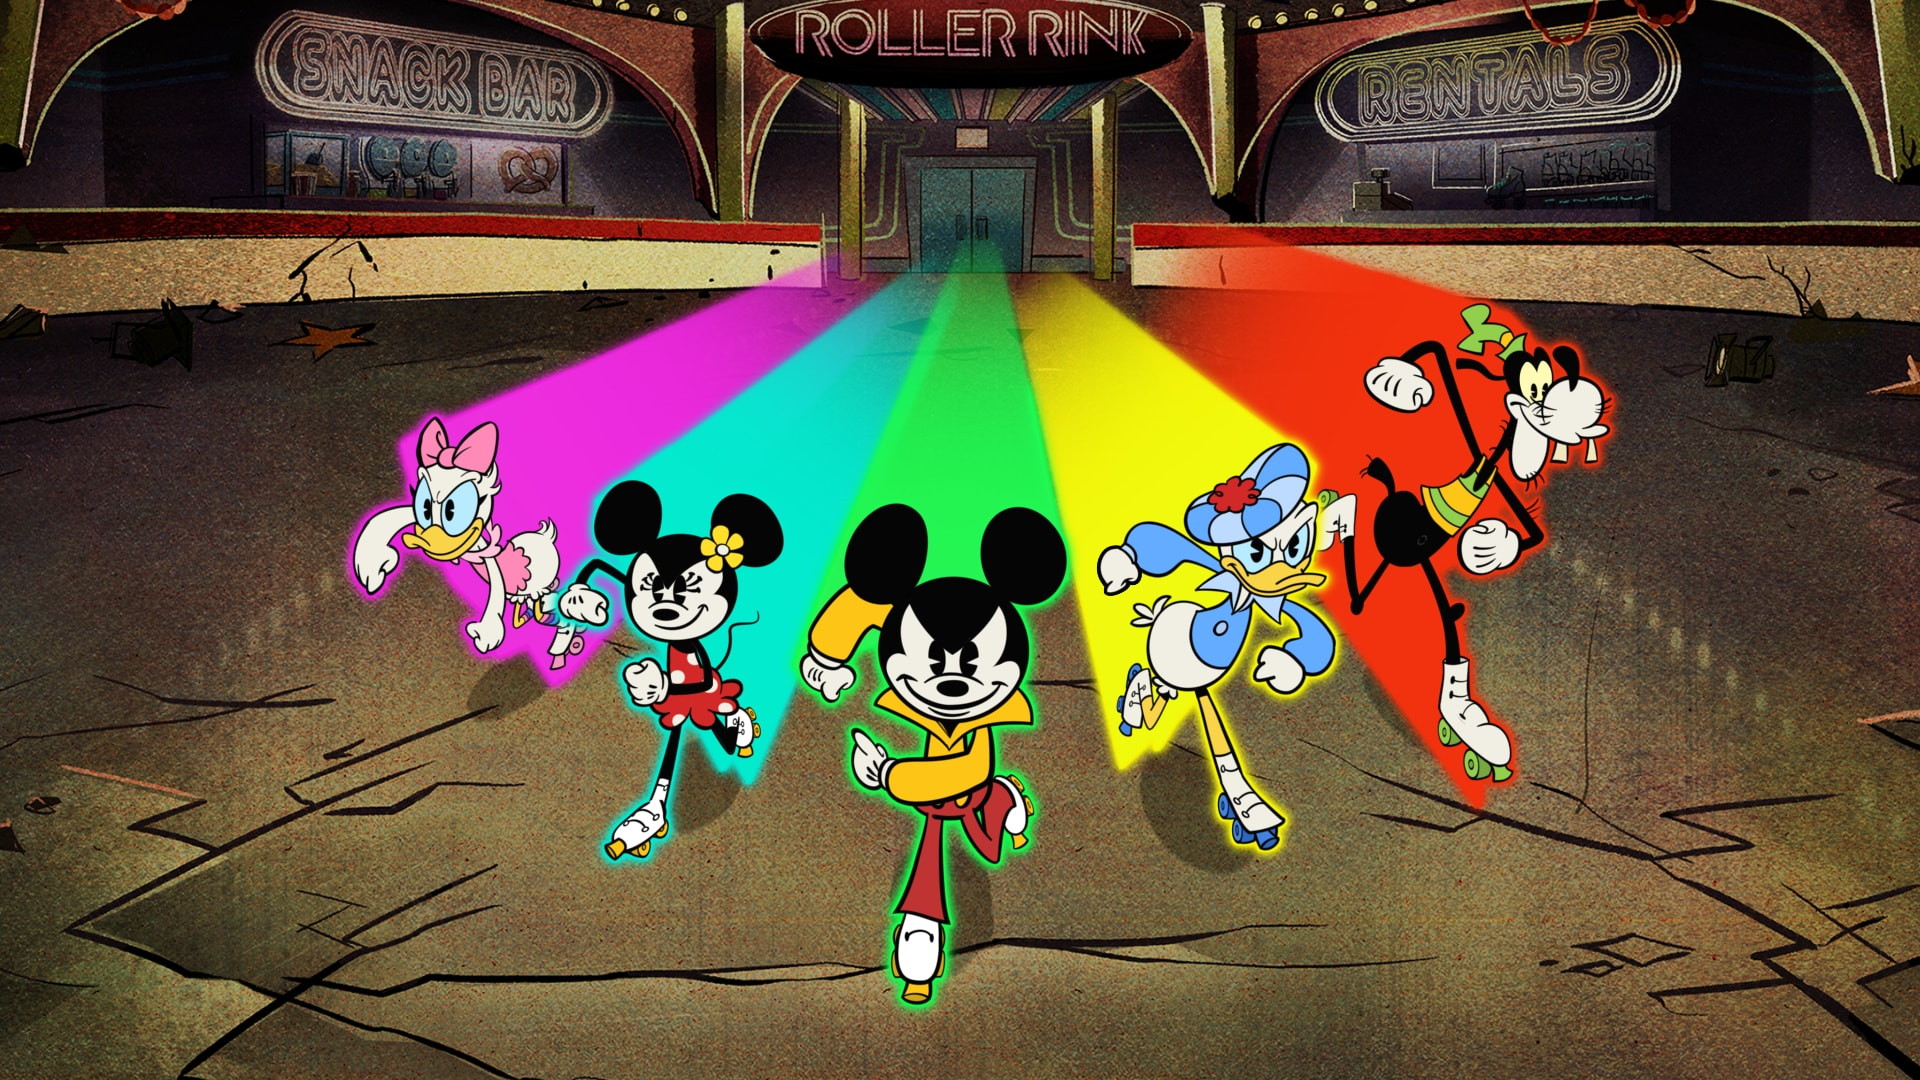 "THE WONDERFUL WORLD OF MICKEY MOUSE - ""Keep on Rollin"" - Mickey and his friends' disco night at the roller rink is placed in peril when Peg-Leg Pete and his gang crash the party and ruin the fun. (Disney+) DAISY DUCK, MINNIE MOUSE, MICKEY MOUSE, DONALD DUCK, GOOFY"